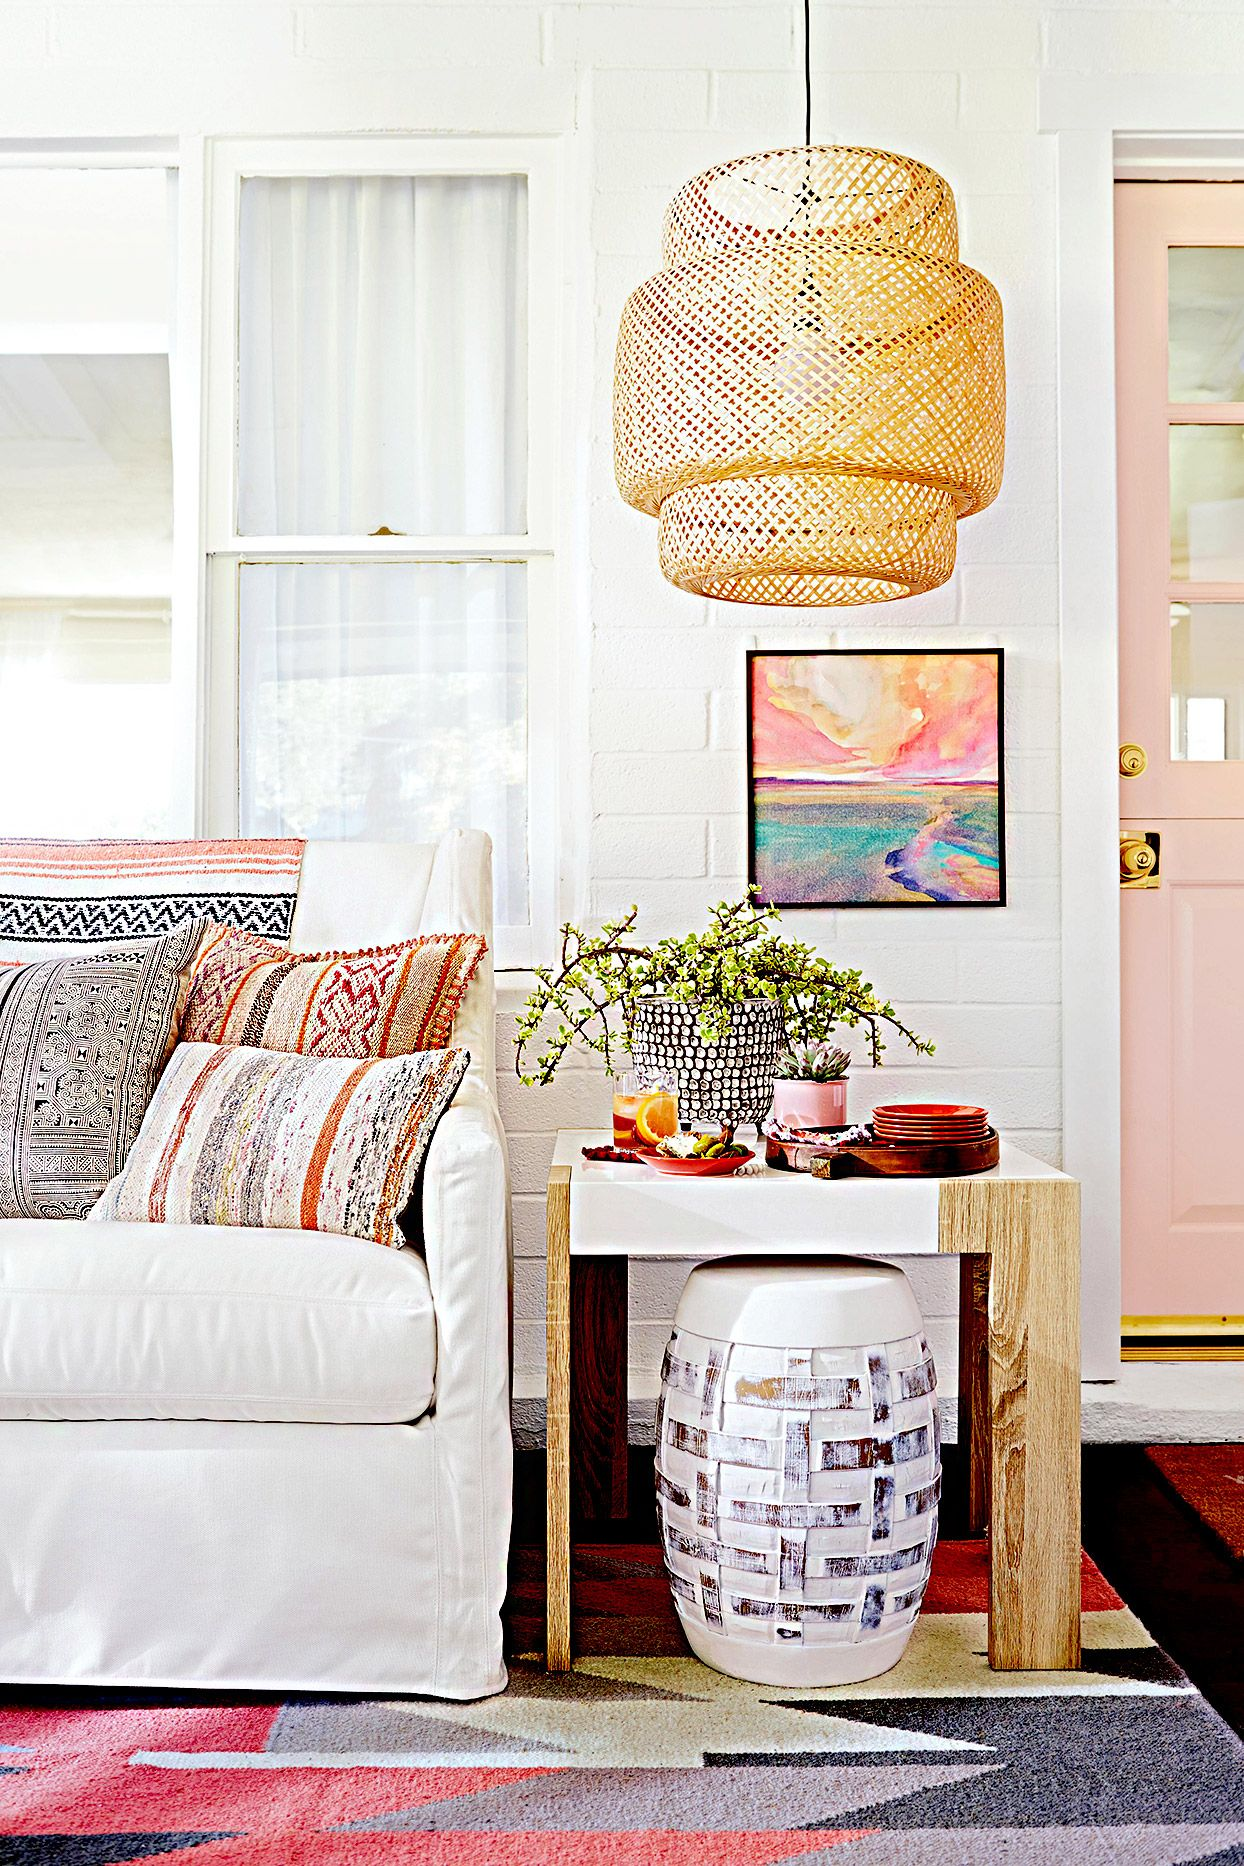 14 unexpected ways to upgrade your living room in 2019 on cozy apartment living room decorating ideas the easy way to look at your living room id=30498